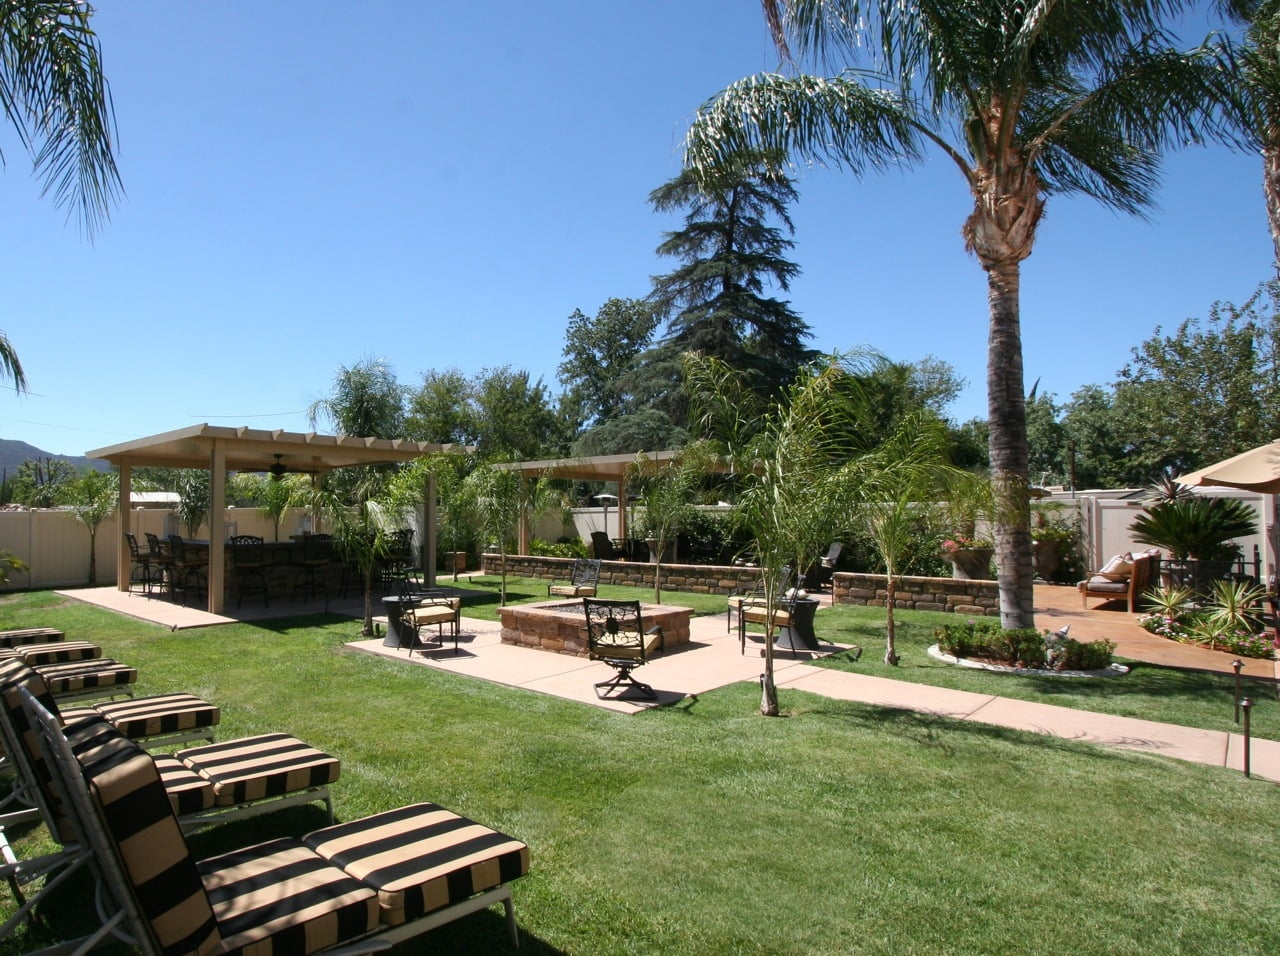 Sun bath on the lawn and enjoy lunch at the bar.